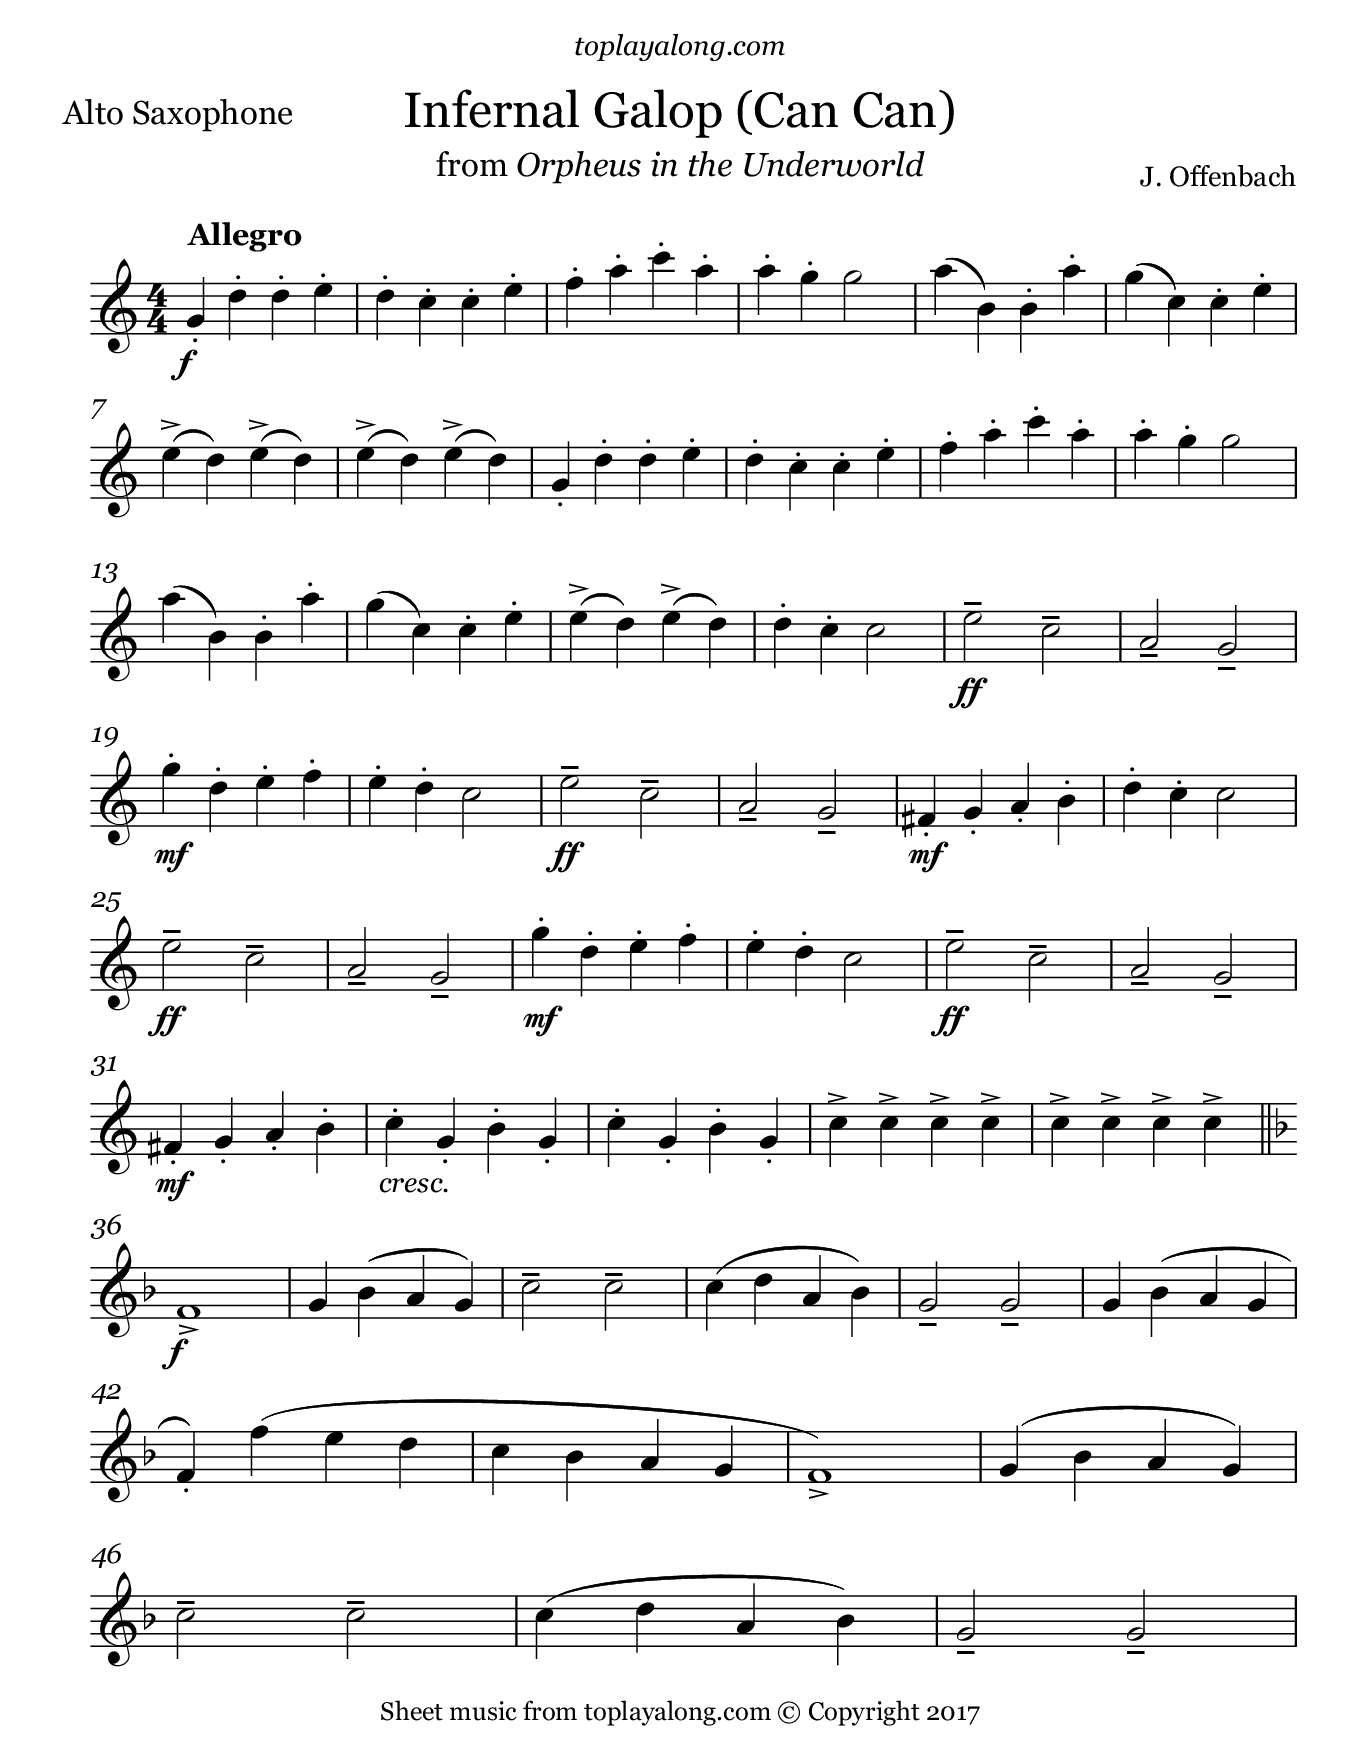 Infernal Galop (Can Can) from Orpheus by Offenbach. Sheet music for Alto Sax, page 1.